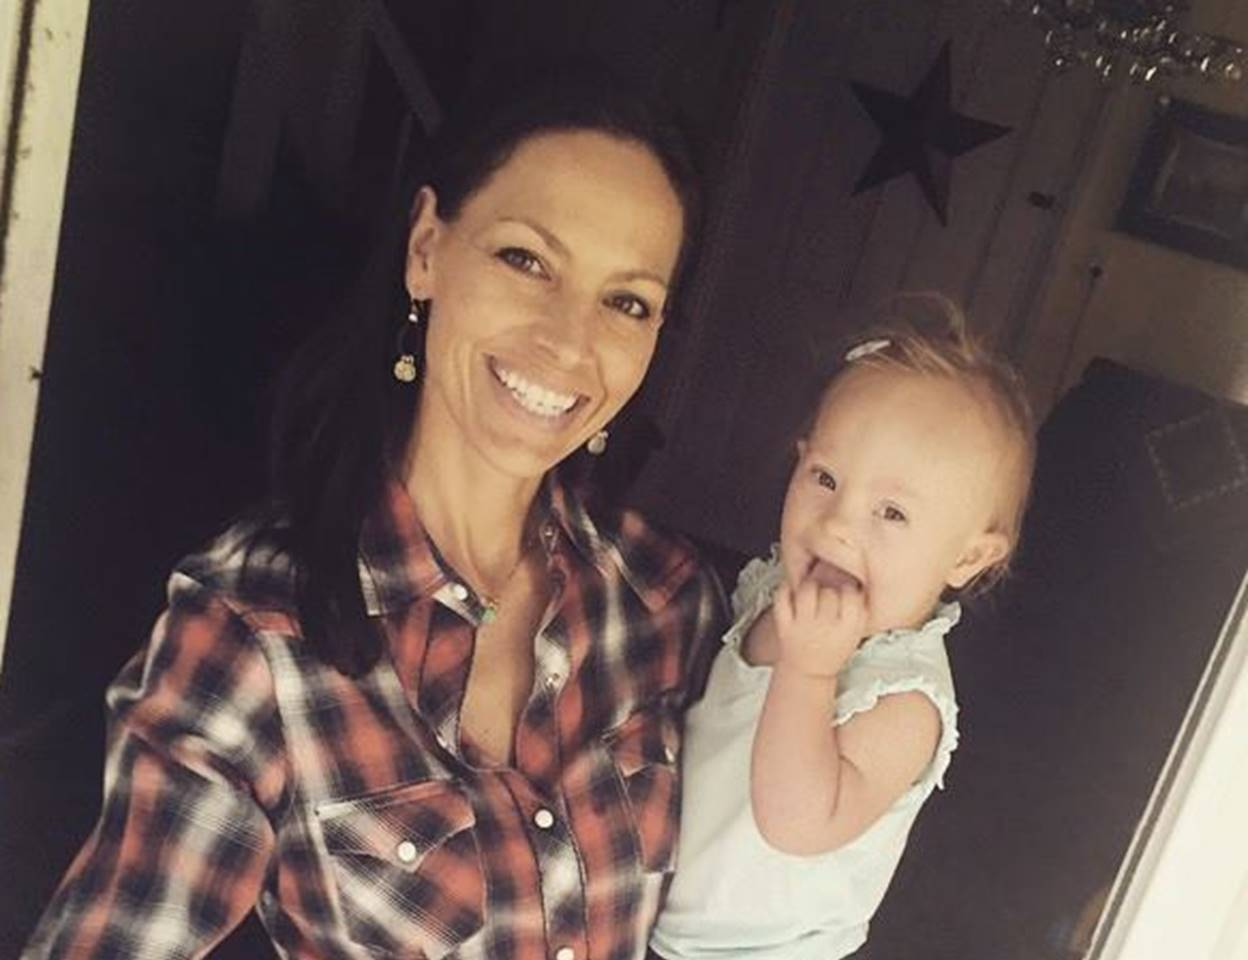 joey feek and indy feek